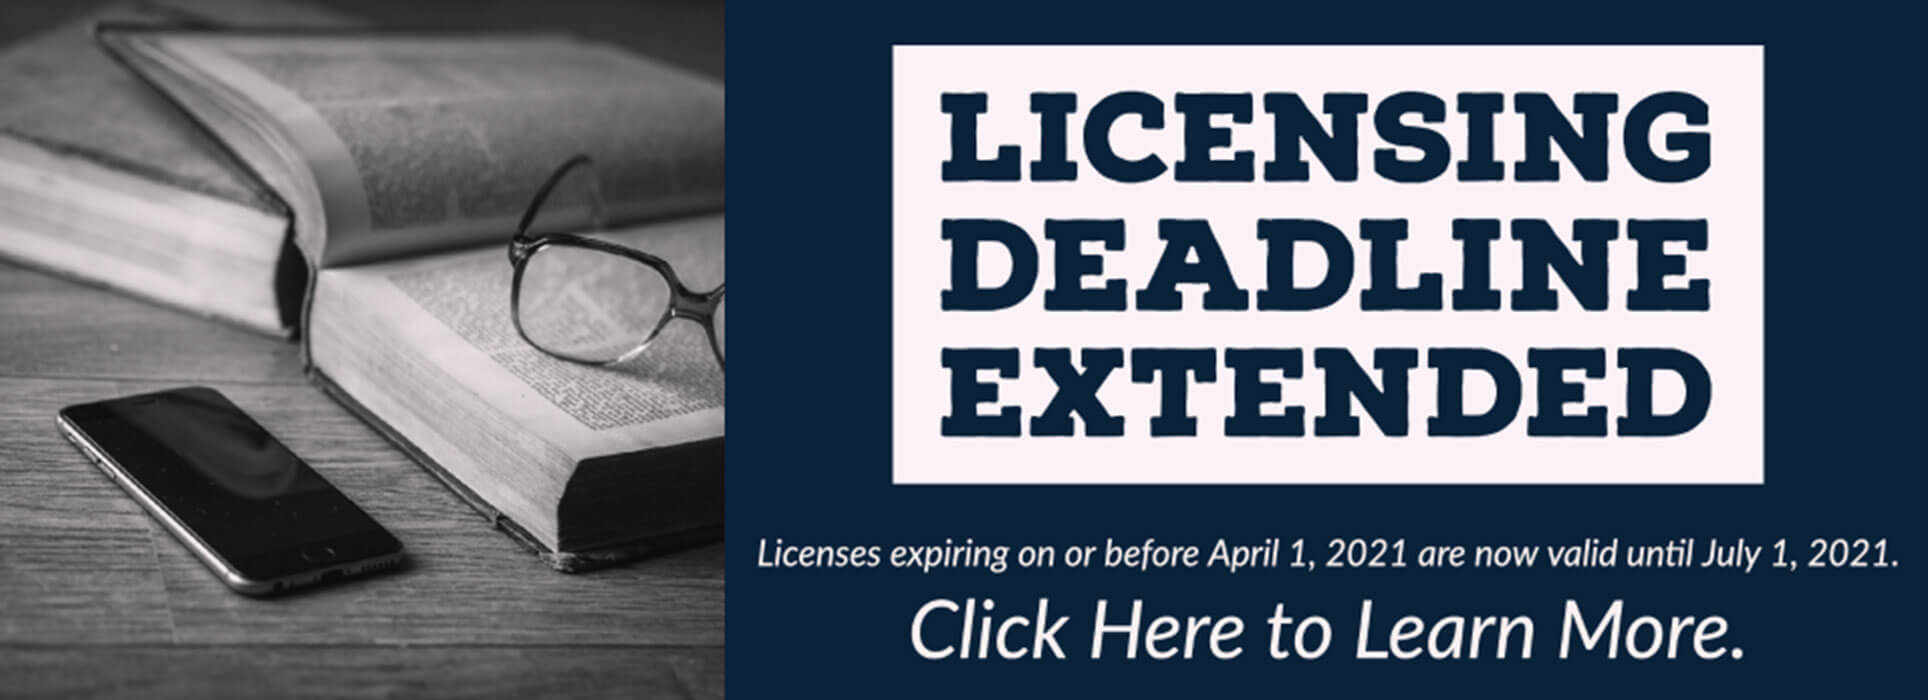 Licensing Deadline Extended to July first for those with licences expiring before April 1